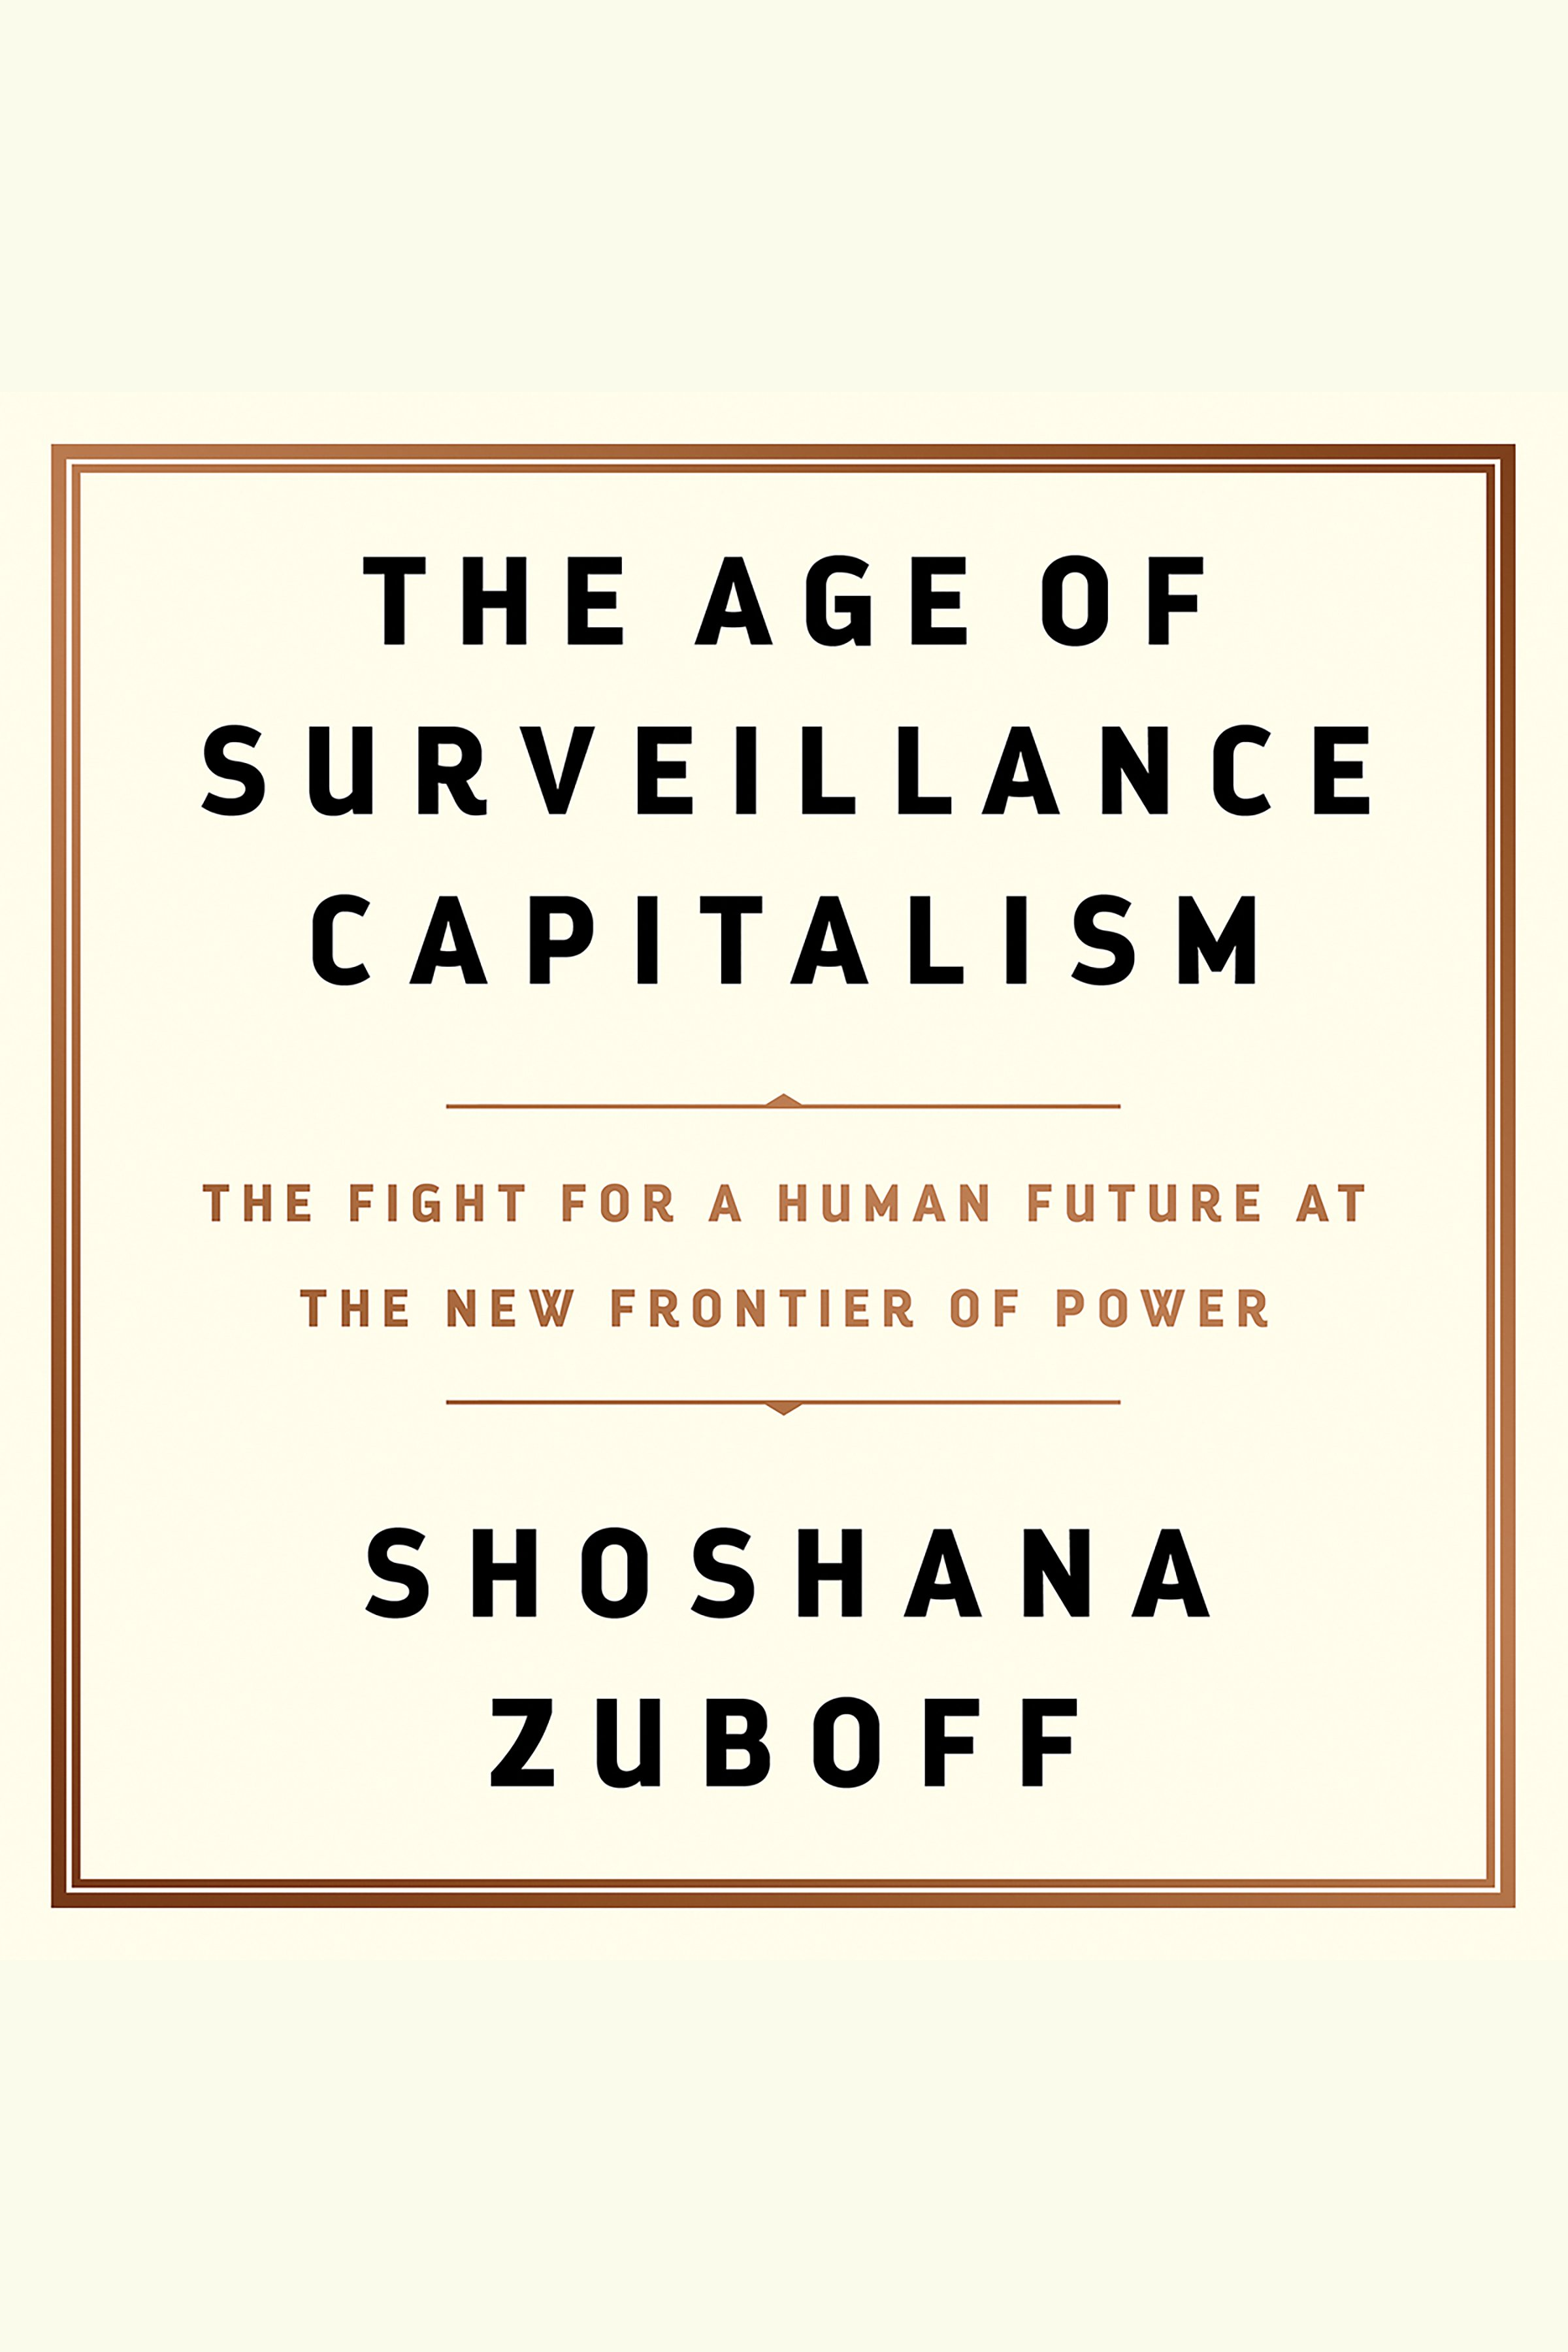 The age of surveillance capitalism the fight for a human future at the new frontier of power cover image